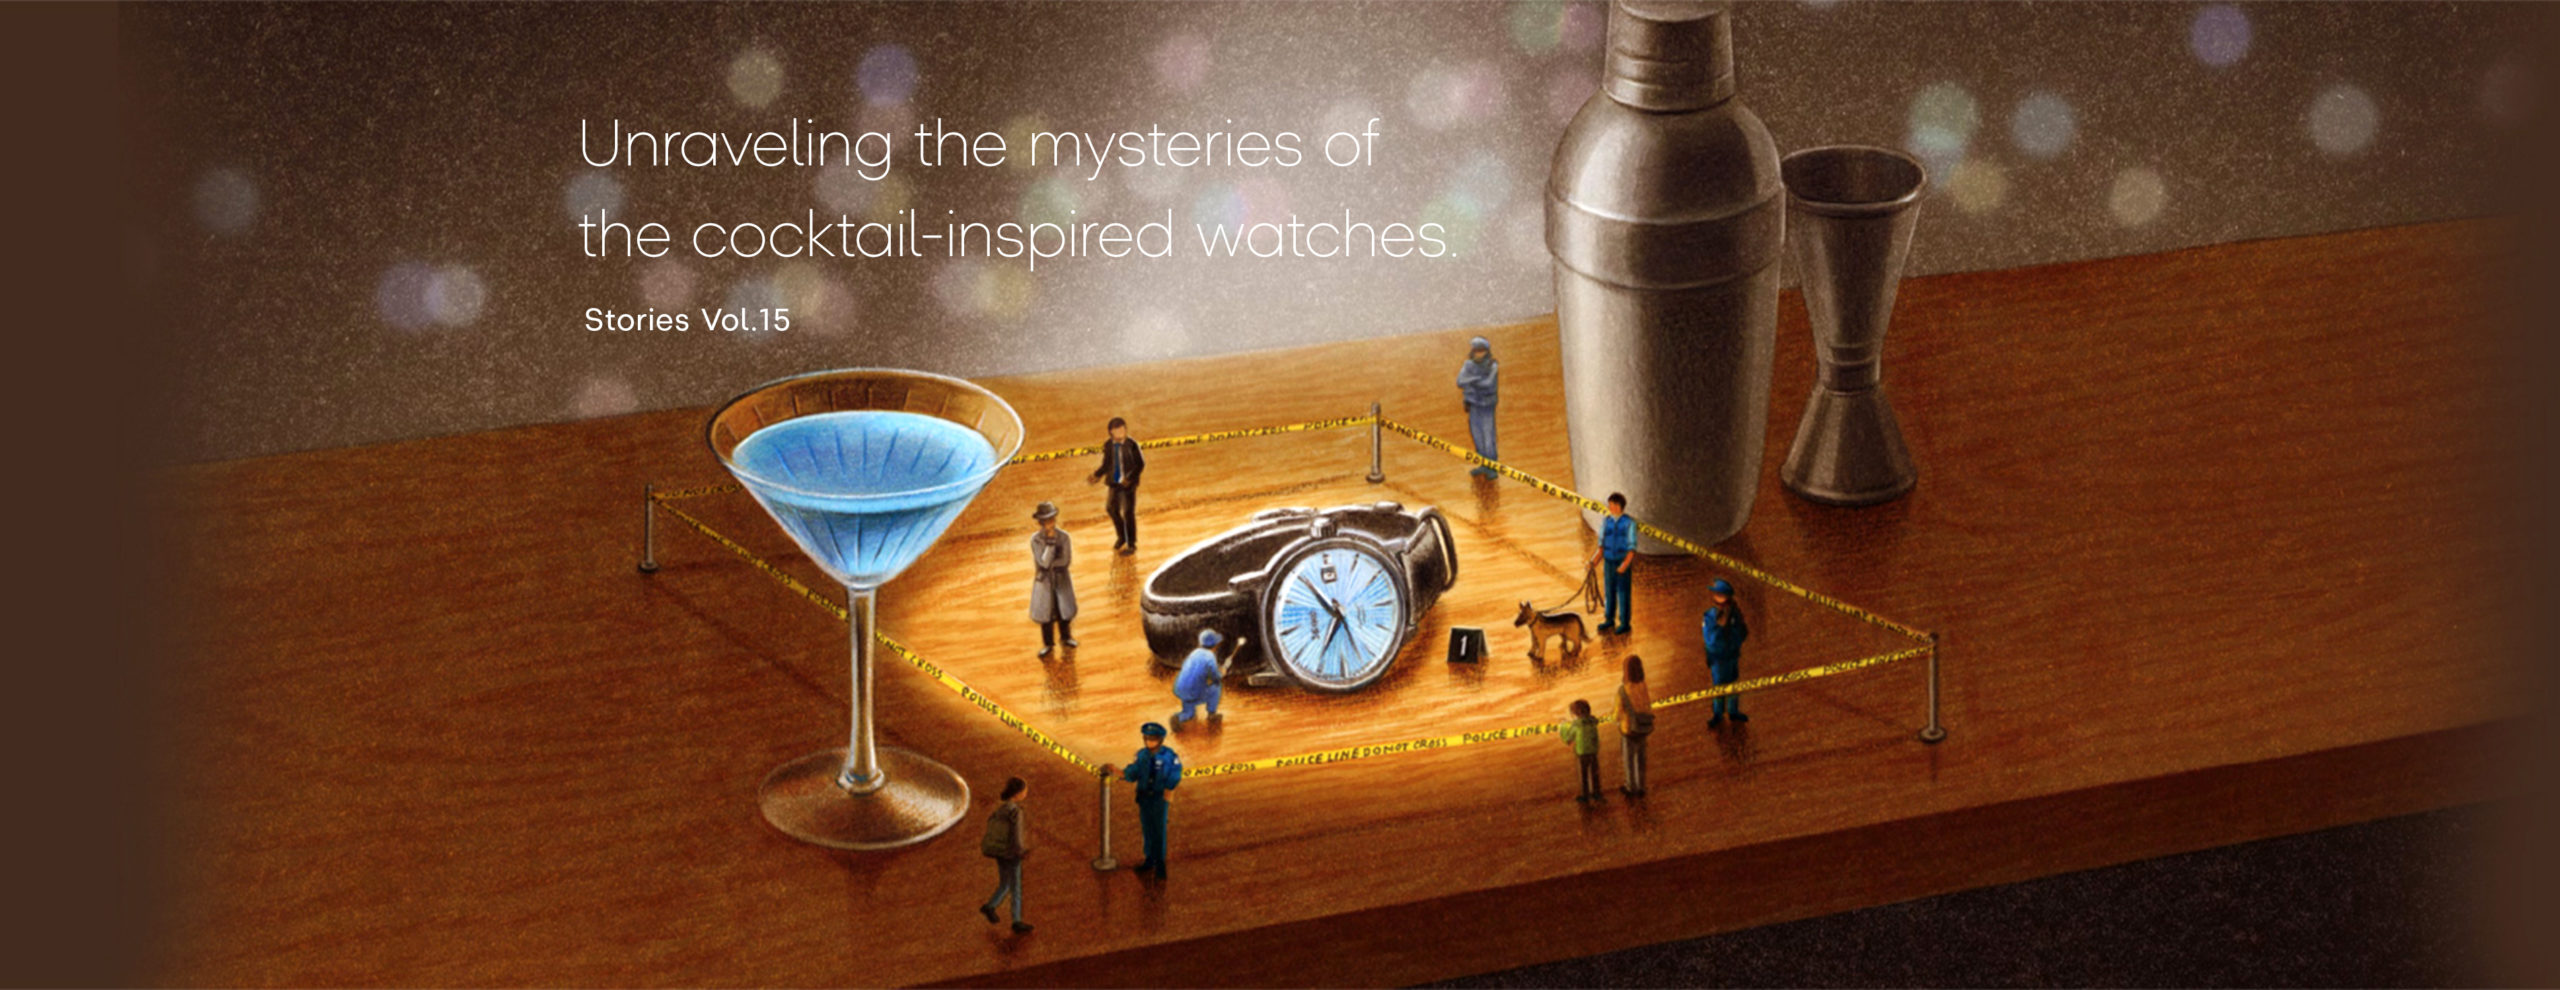 Vol.15 Unraveling the mysteries of the cocktail-inspired watches.